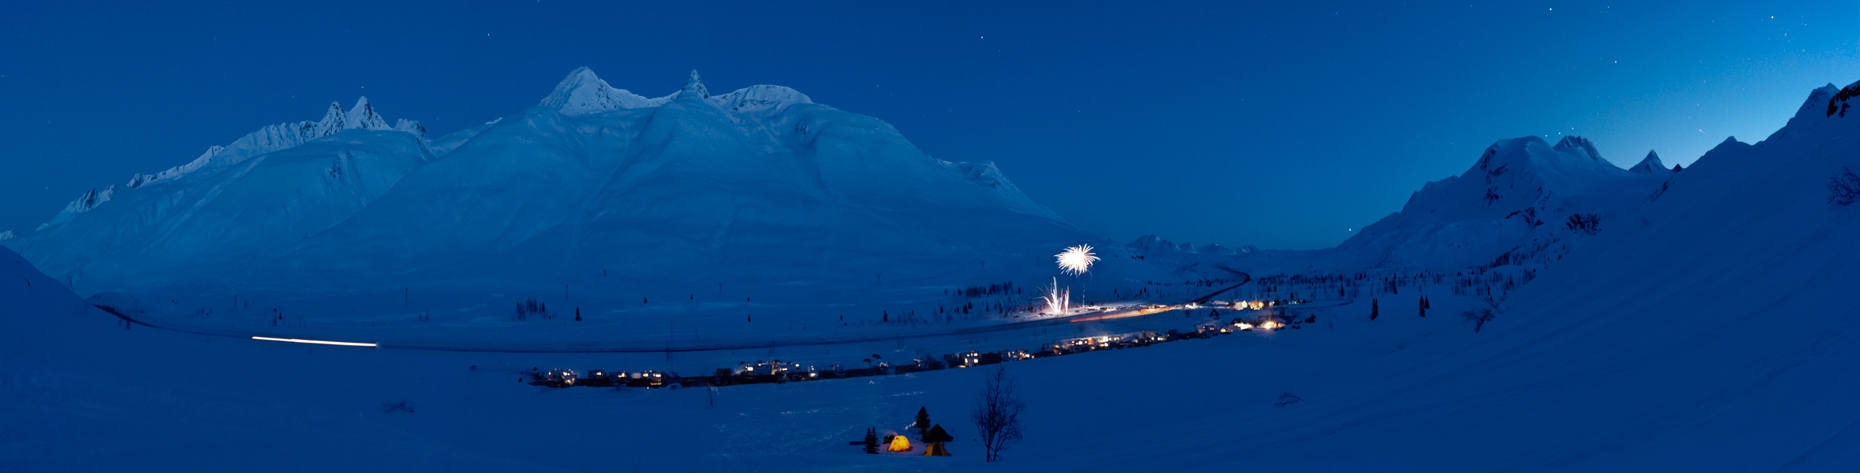 Jon Wyatt Photography - Fireworks after sunset at the Tailgate Snowboard Festival, Thompson Pass, Valdez, Alaska